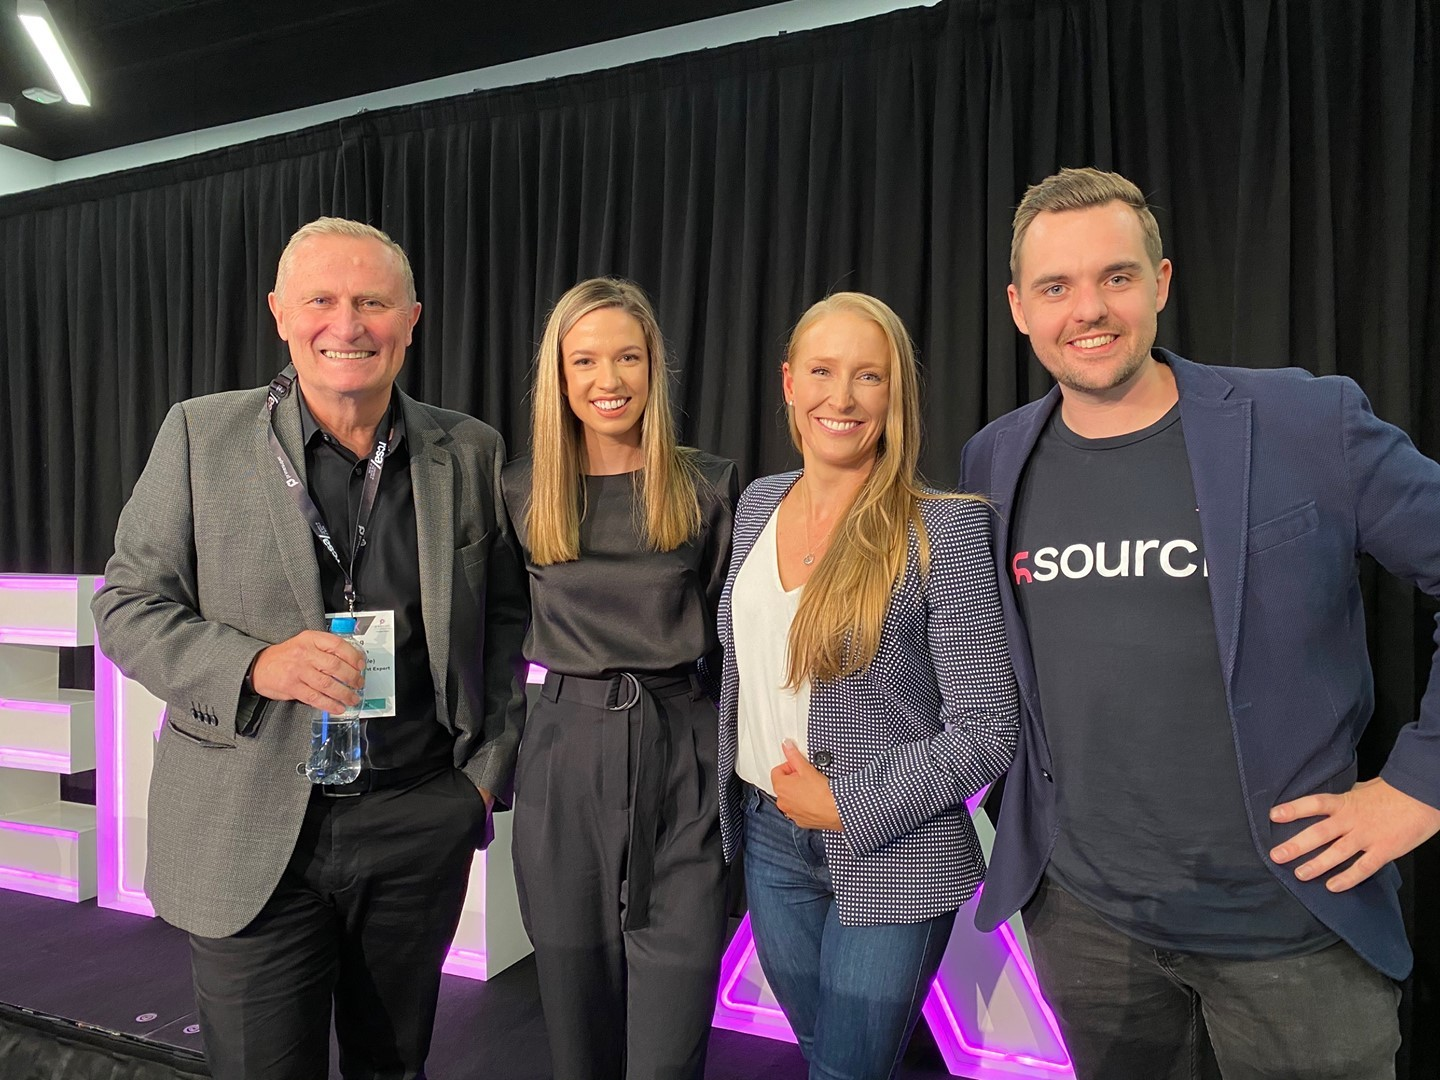 What a line-up!At yesterday's RCSA Talent X event, alongside a bunch of recruitment revolutionaries, our co-founder Emily Mcleod took part in a wide-ranging panel discussion on recruiter brand and reputation building. Helping to future-proof recruitment alongside Emily were....Greg SavageErin DevlinJames JenningsGreat discussion with so many actionable ideas, thanks guys! #Wecruitment #RecruitmentHappy